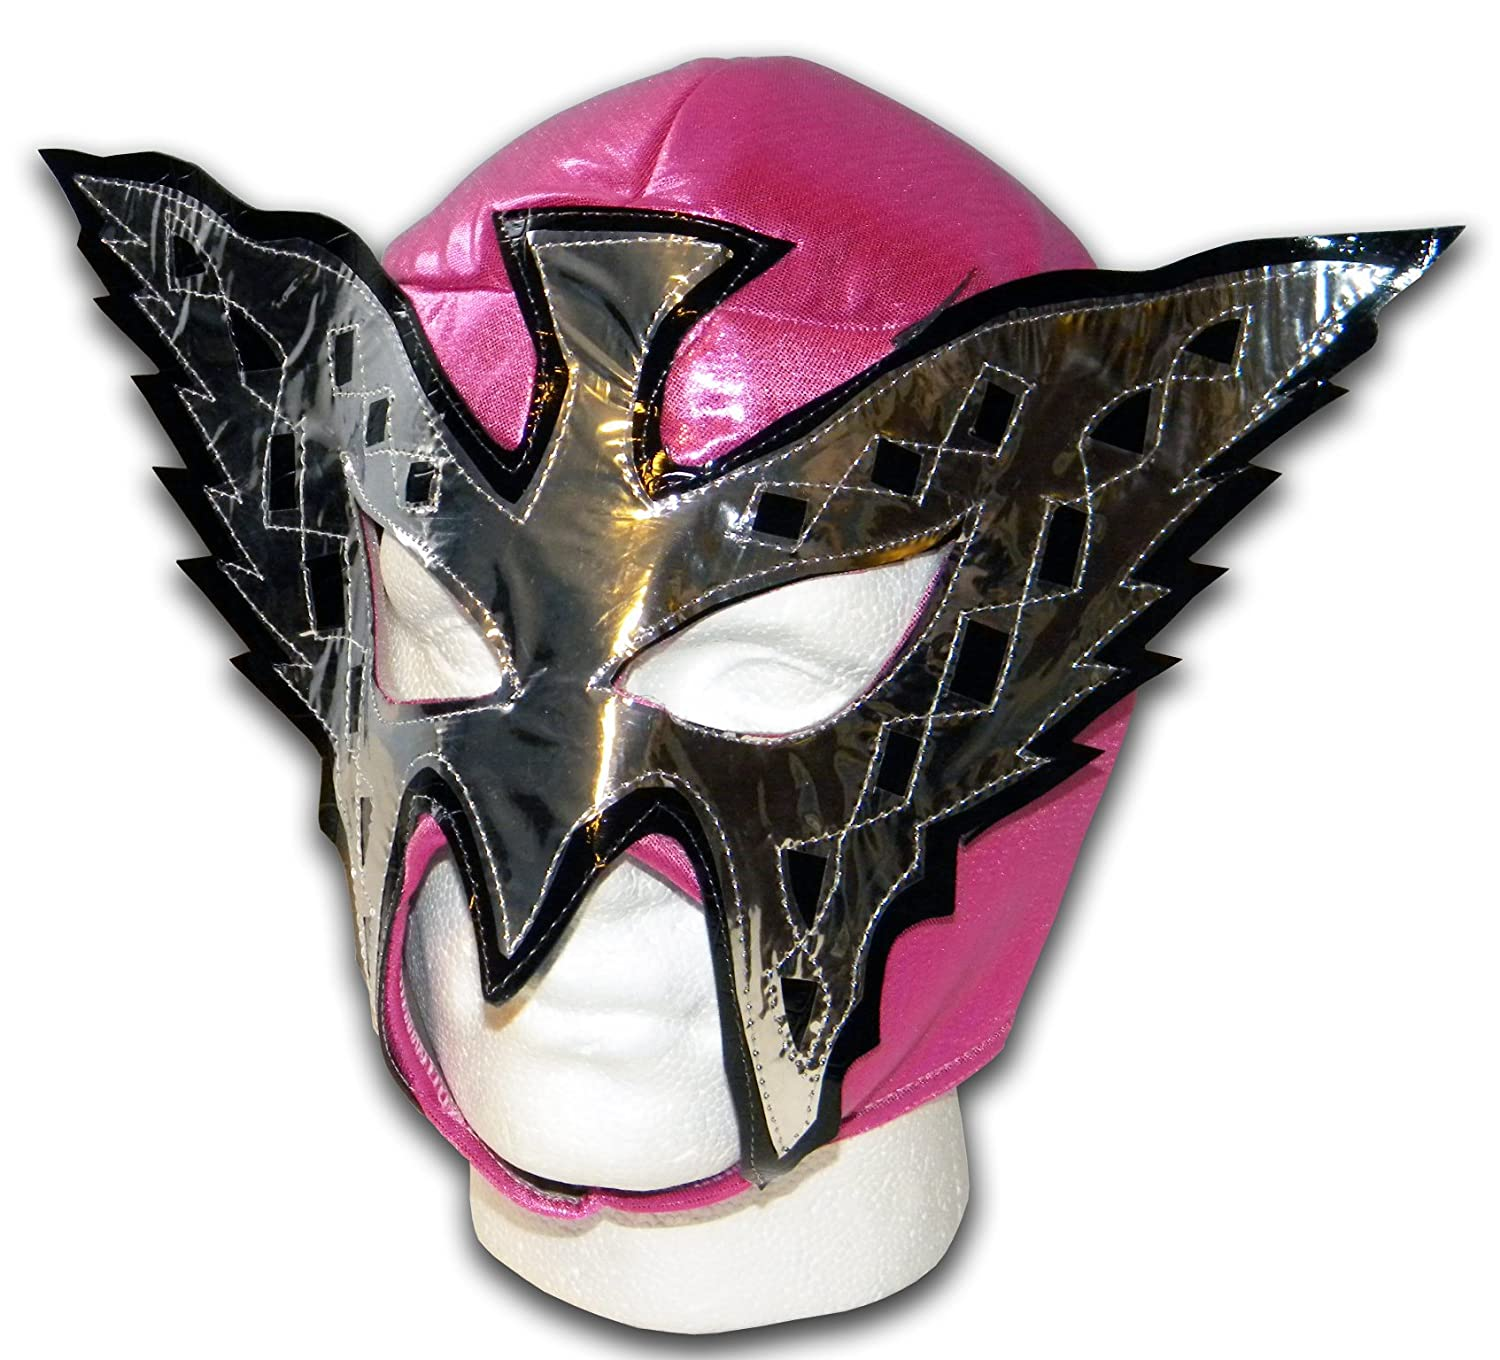 Pink Butterfly Wrestling Lucha Libre Mexican mask by Luchadora QP-LX0W-239P